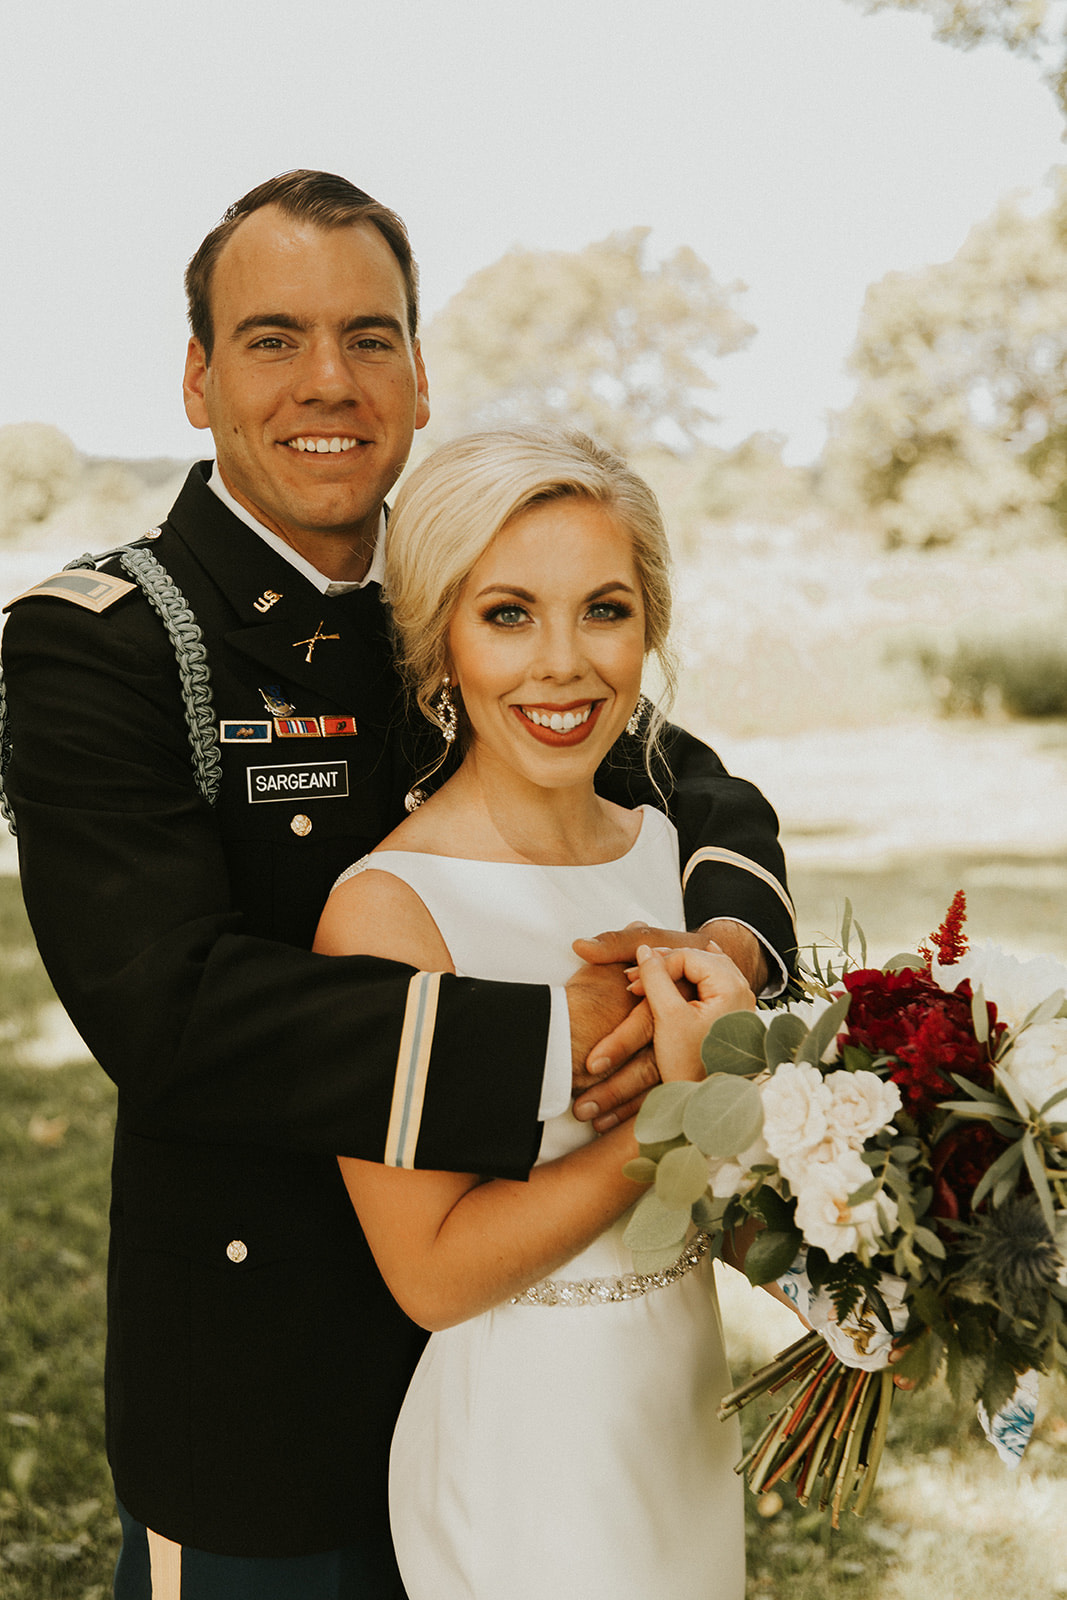 Laura Sargeant: Celebrating July 4th as a military spouse living overseas - fox